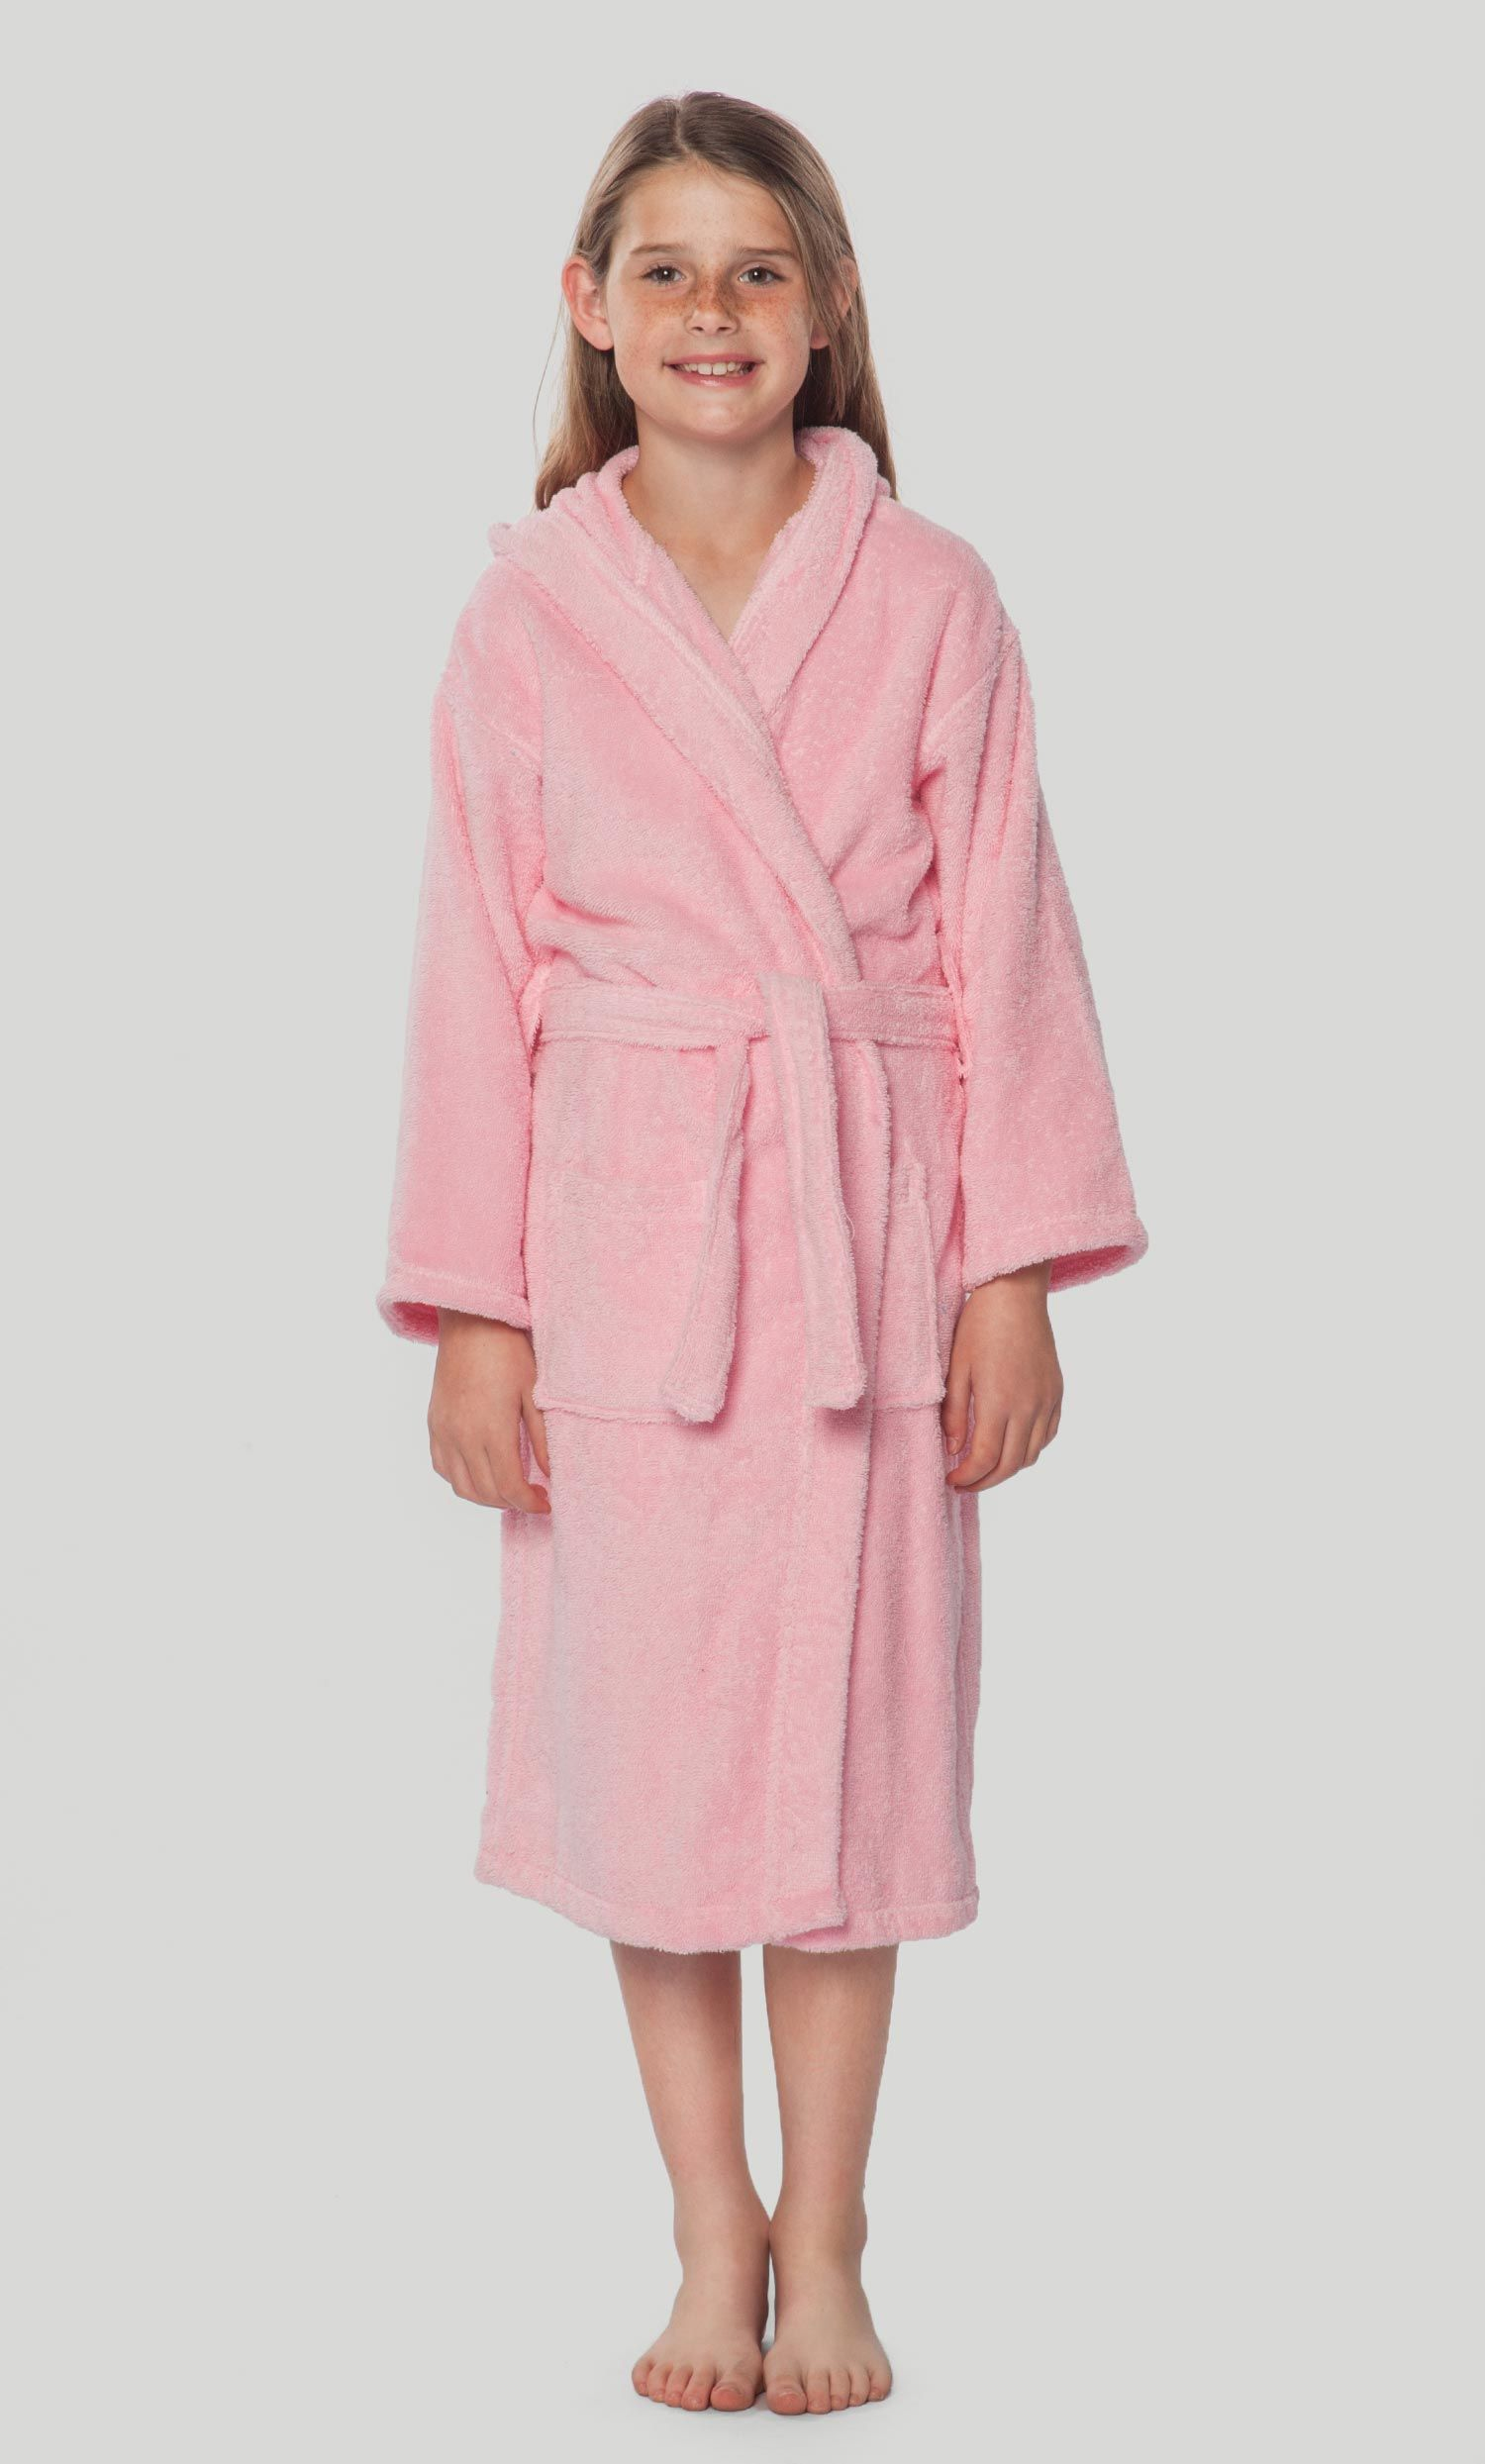 8ec7b05d32 Kids Bathrobes    Terry Kids Hooded Bathrobes    100% Turkish Cotton Pink  Hooded Terry Kid s Bathrobe - Wholesale bathrobes